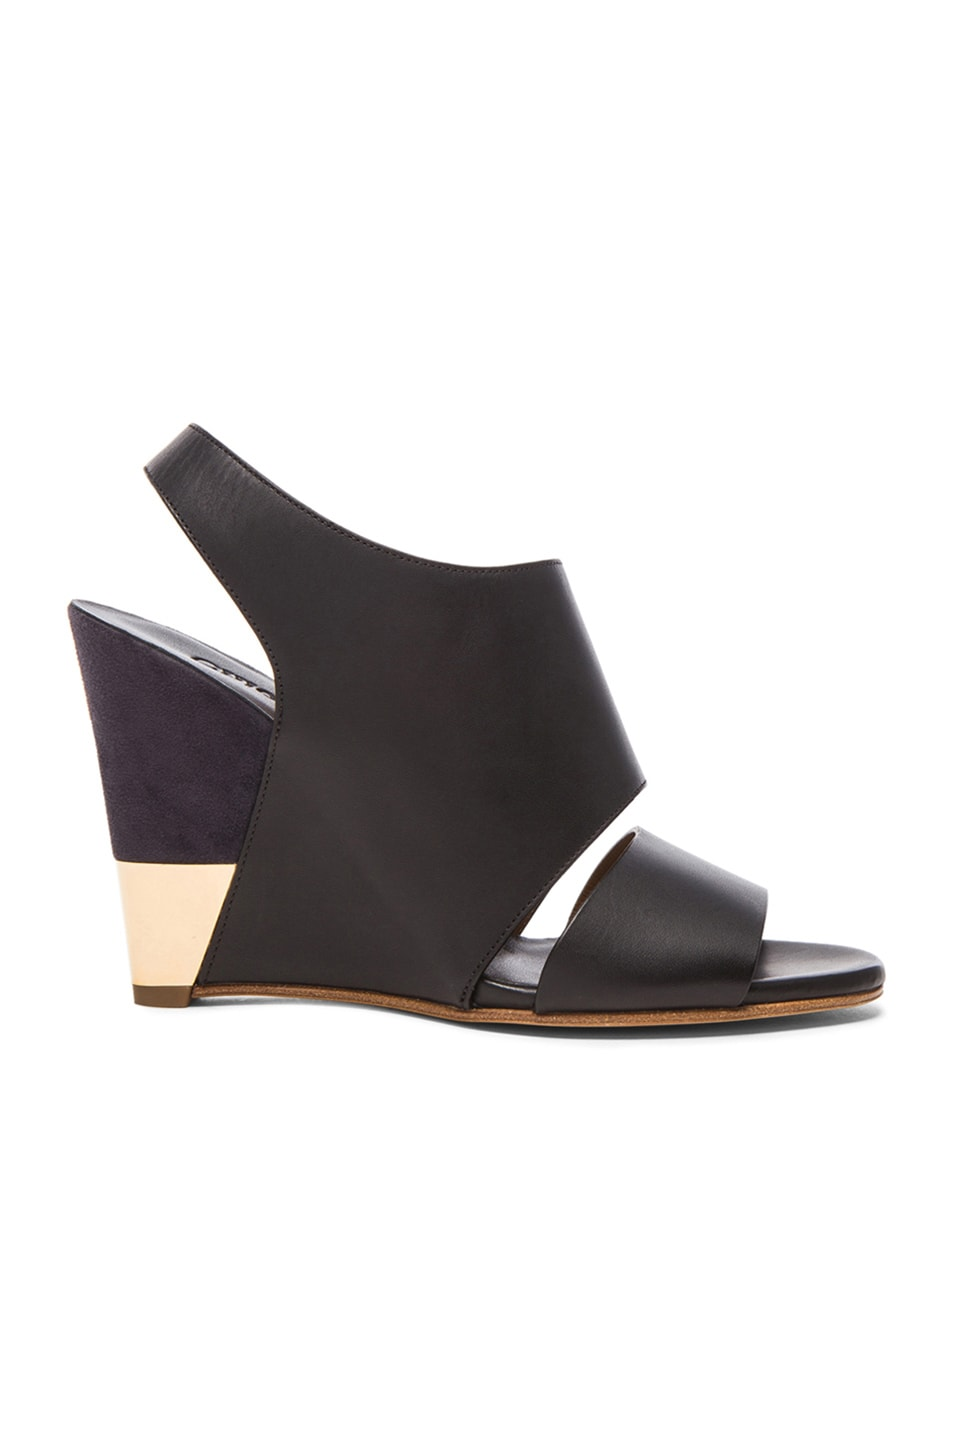 Image 1 of Chloe Sling Back Leather Wedges in Black Leather & Navy Suede